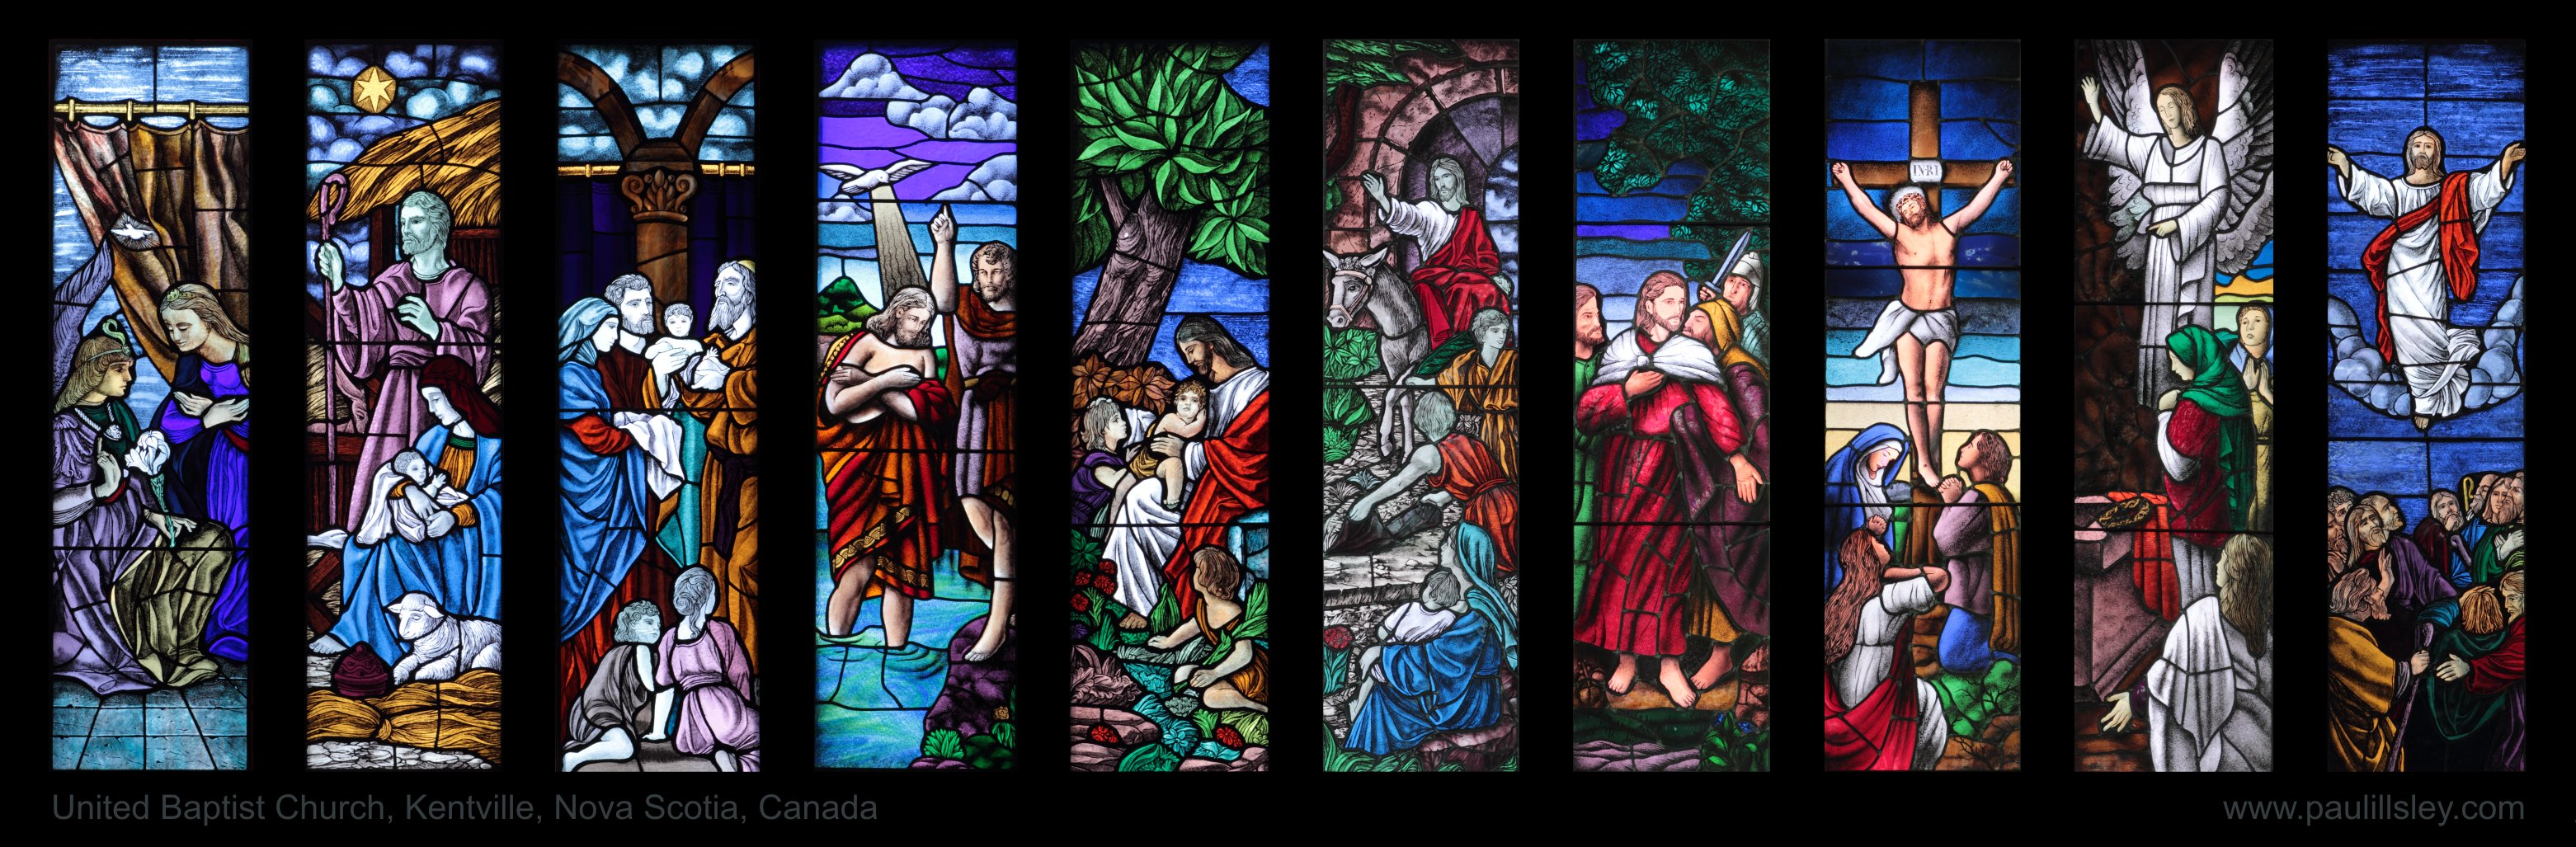 Cana Windows Stained Glass Windows